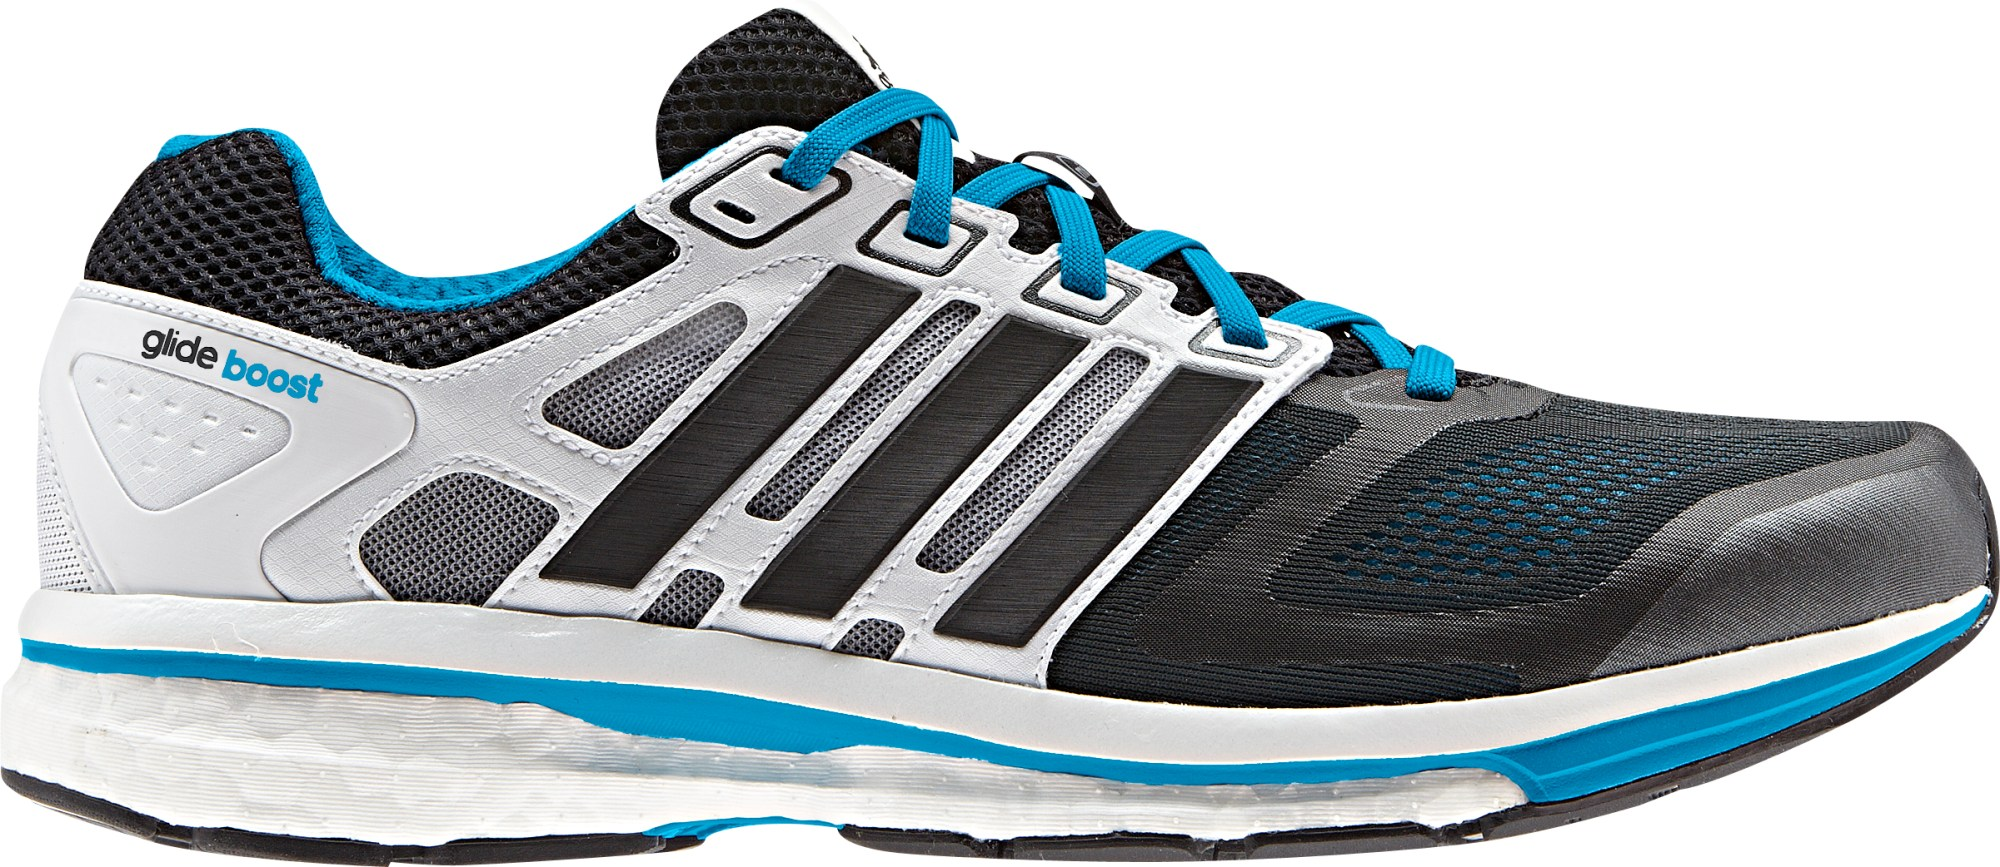 Wiggle | Adidas Supernova Glide Boost 6 Shoes - SS14 ...